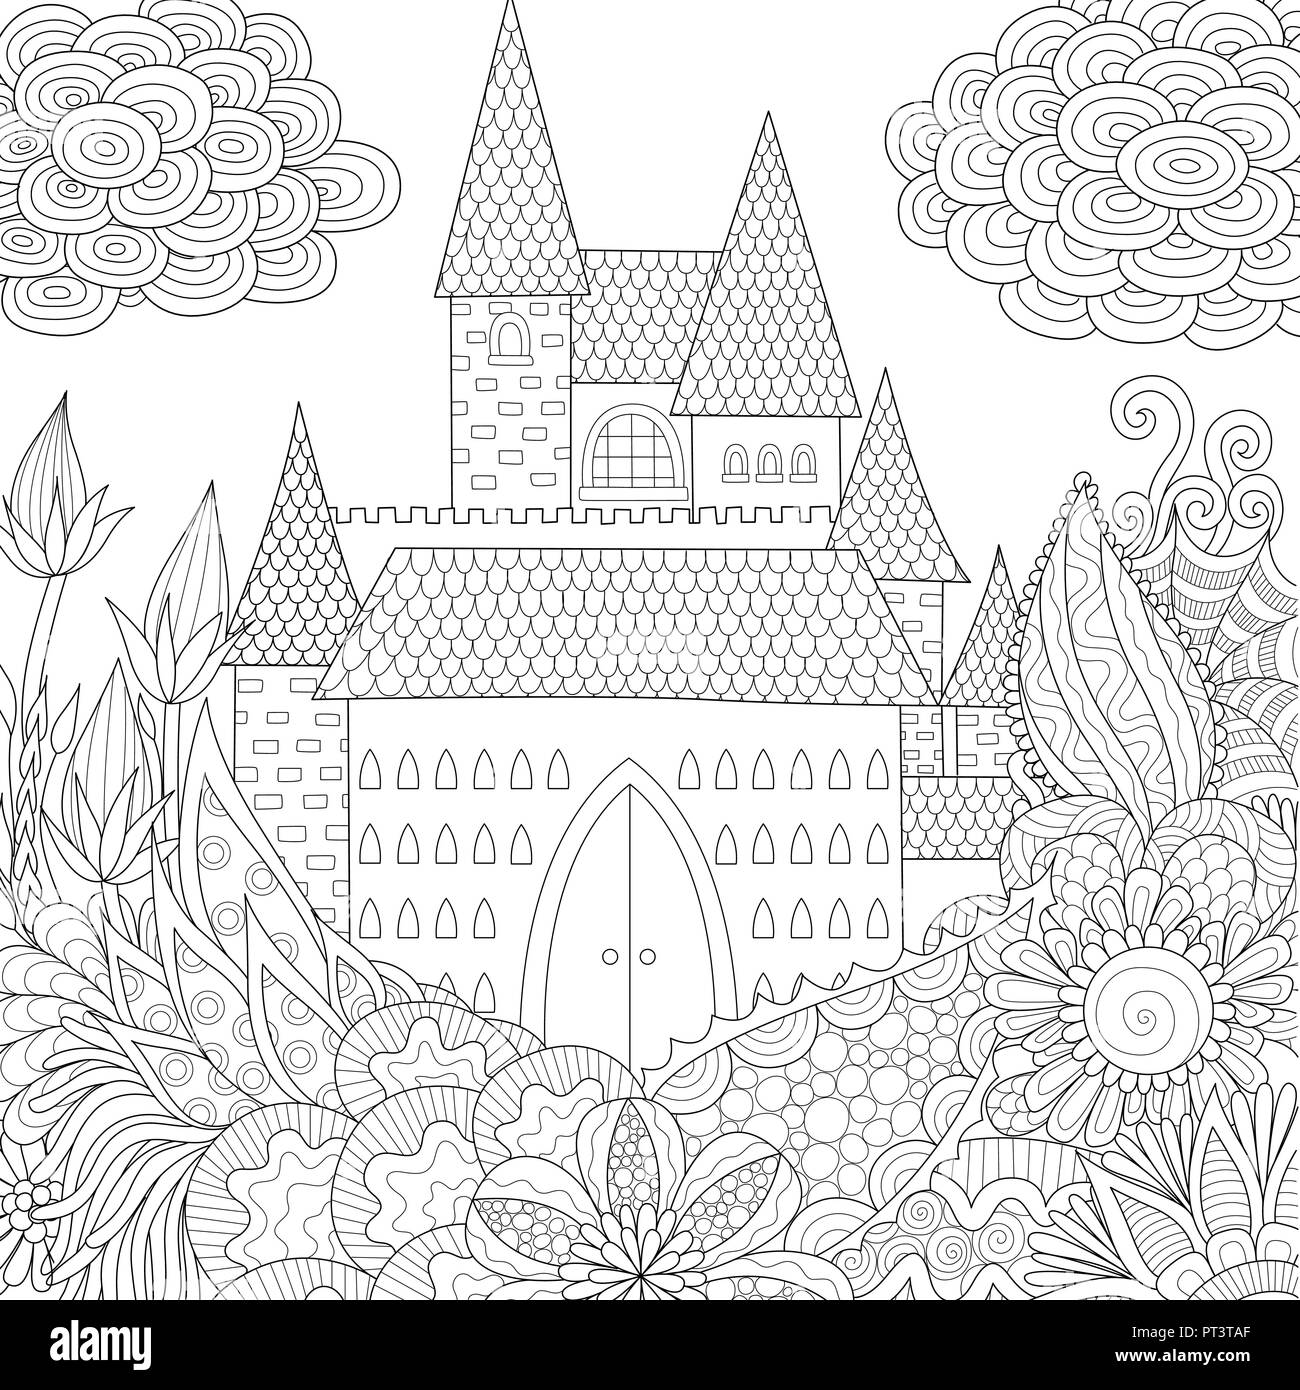 Line art design of jungle and castle coloring Book for adults ...